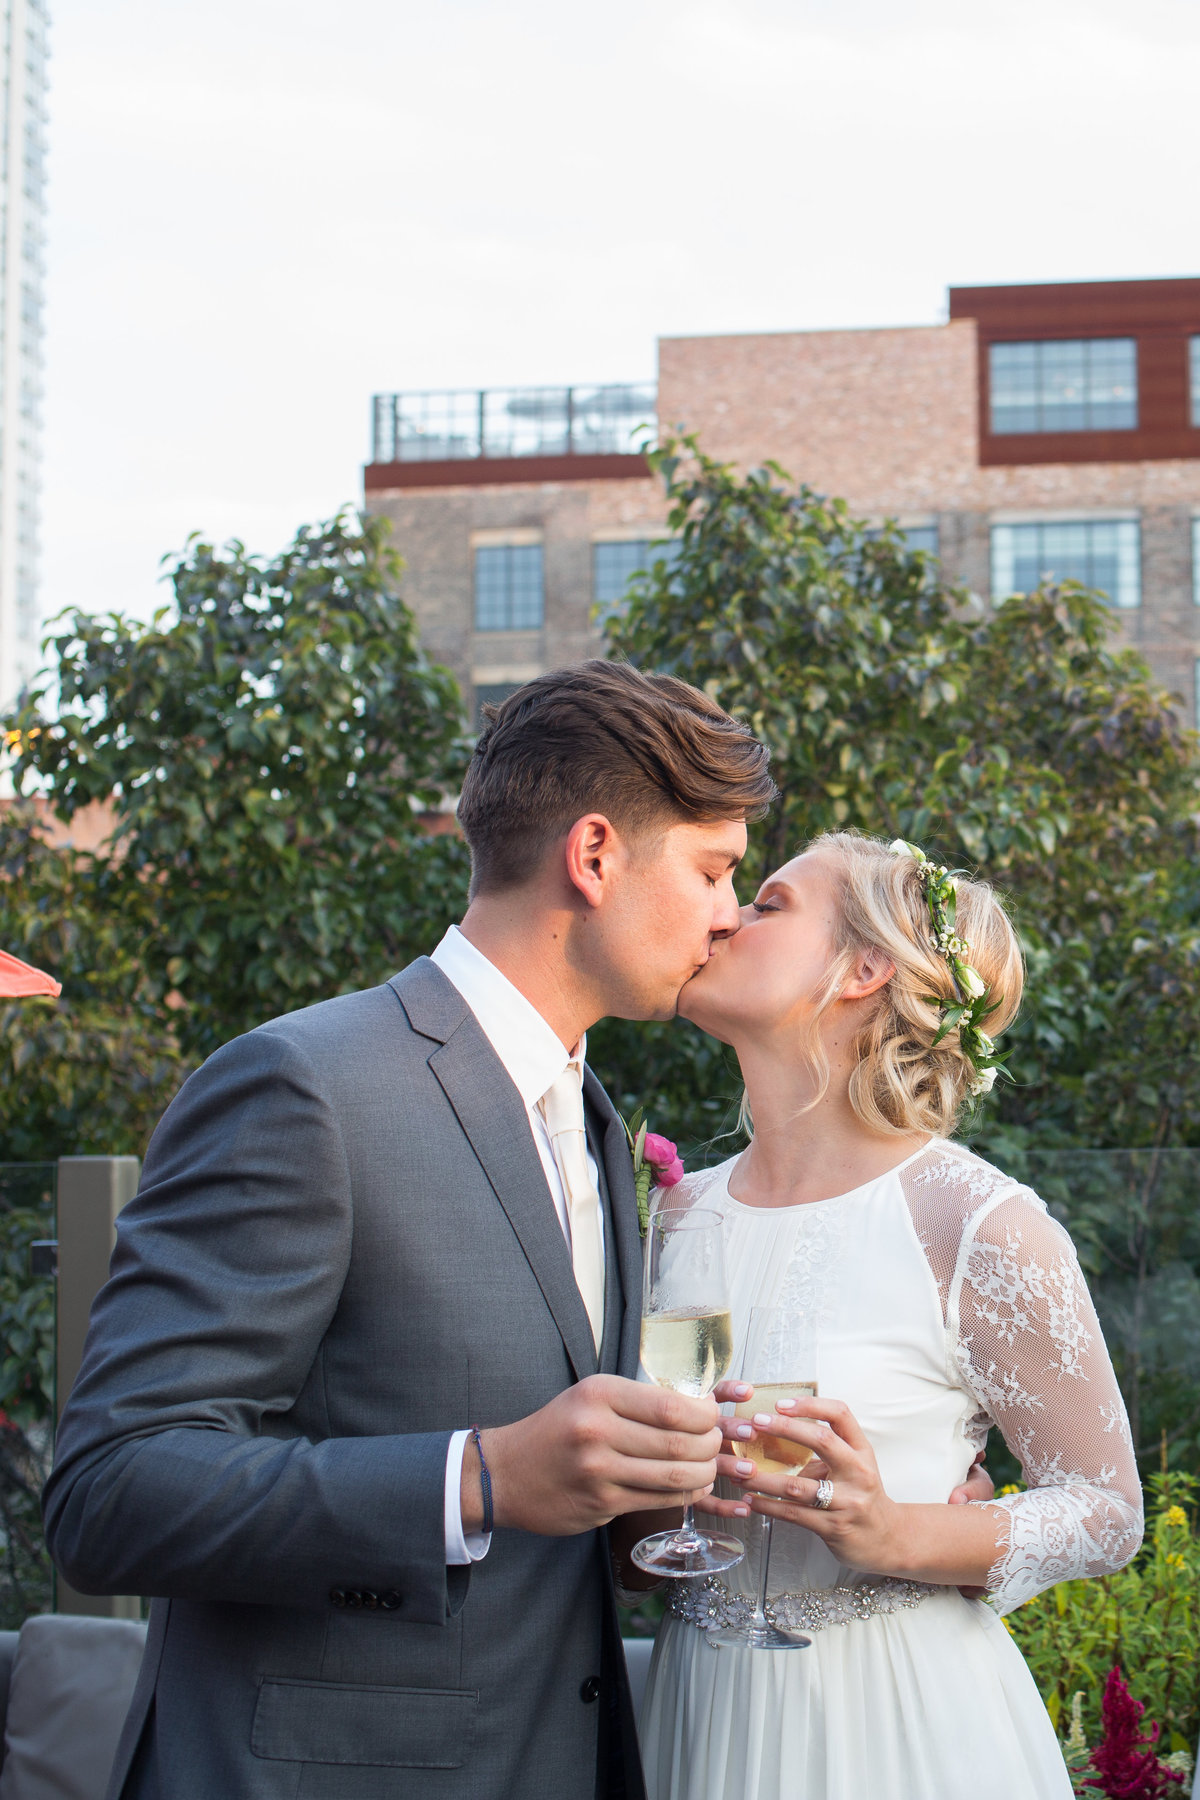 Little-Goat-Public-Hotel-Chicago-Wedding-81